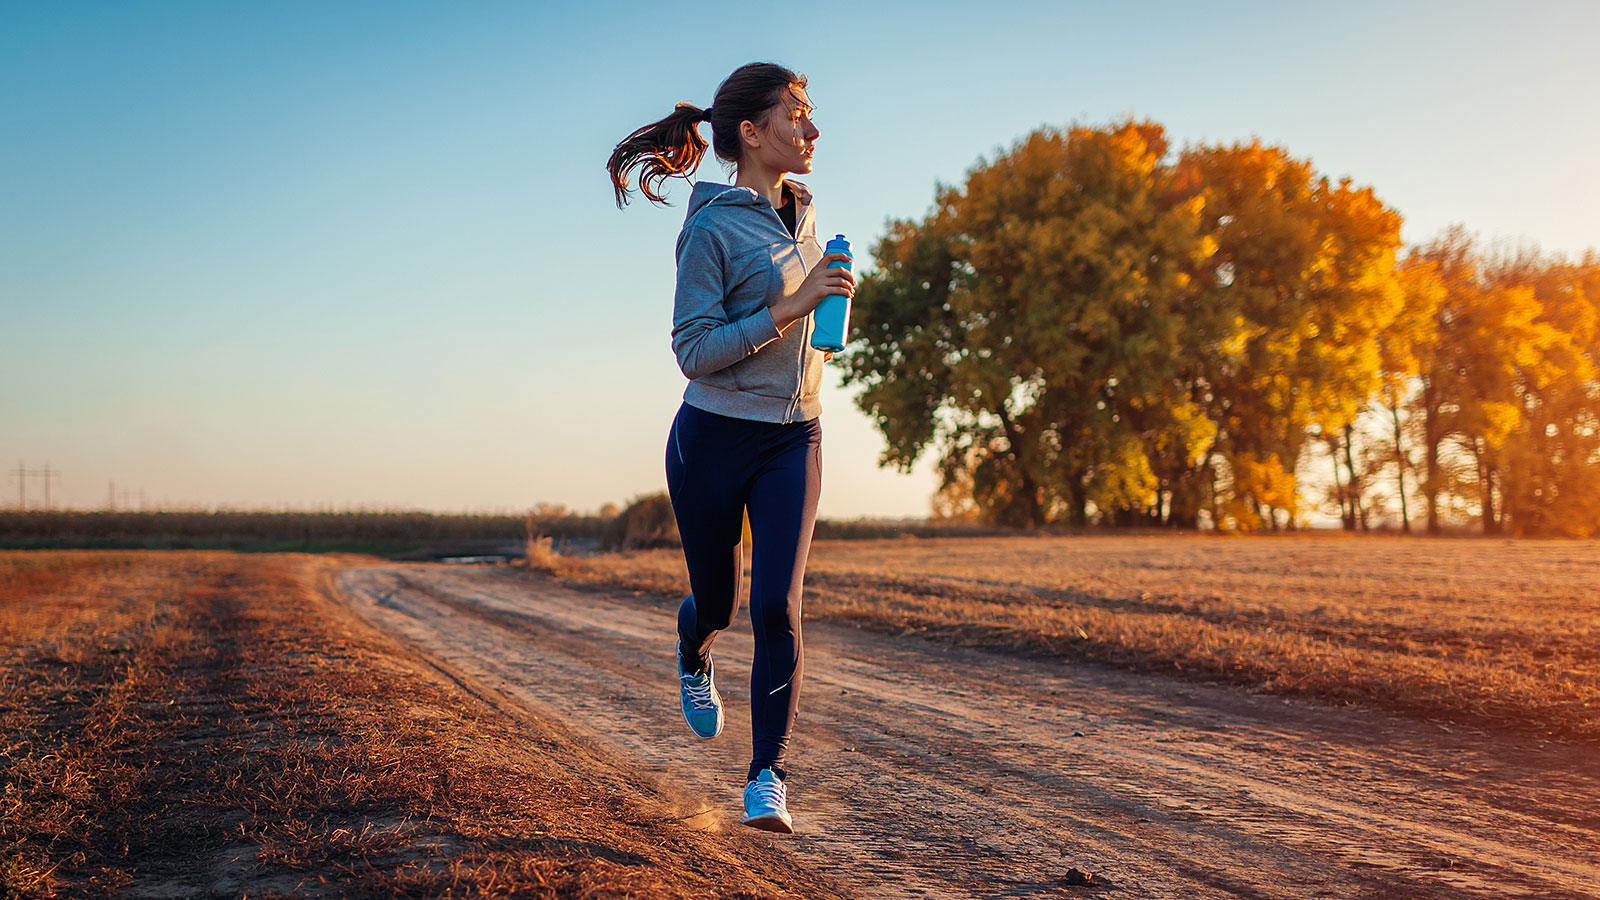 Exercising at this specific time of day linked to lower cancer risk